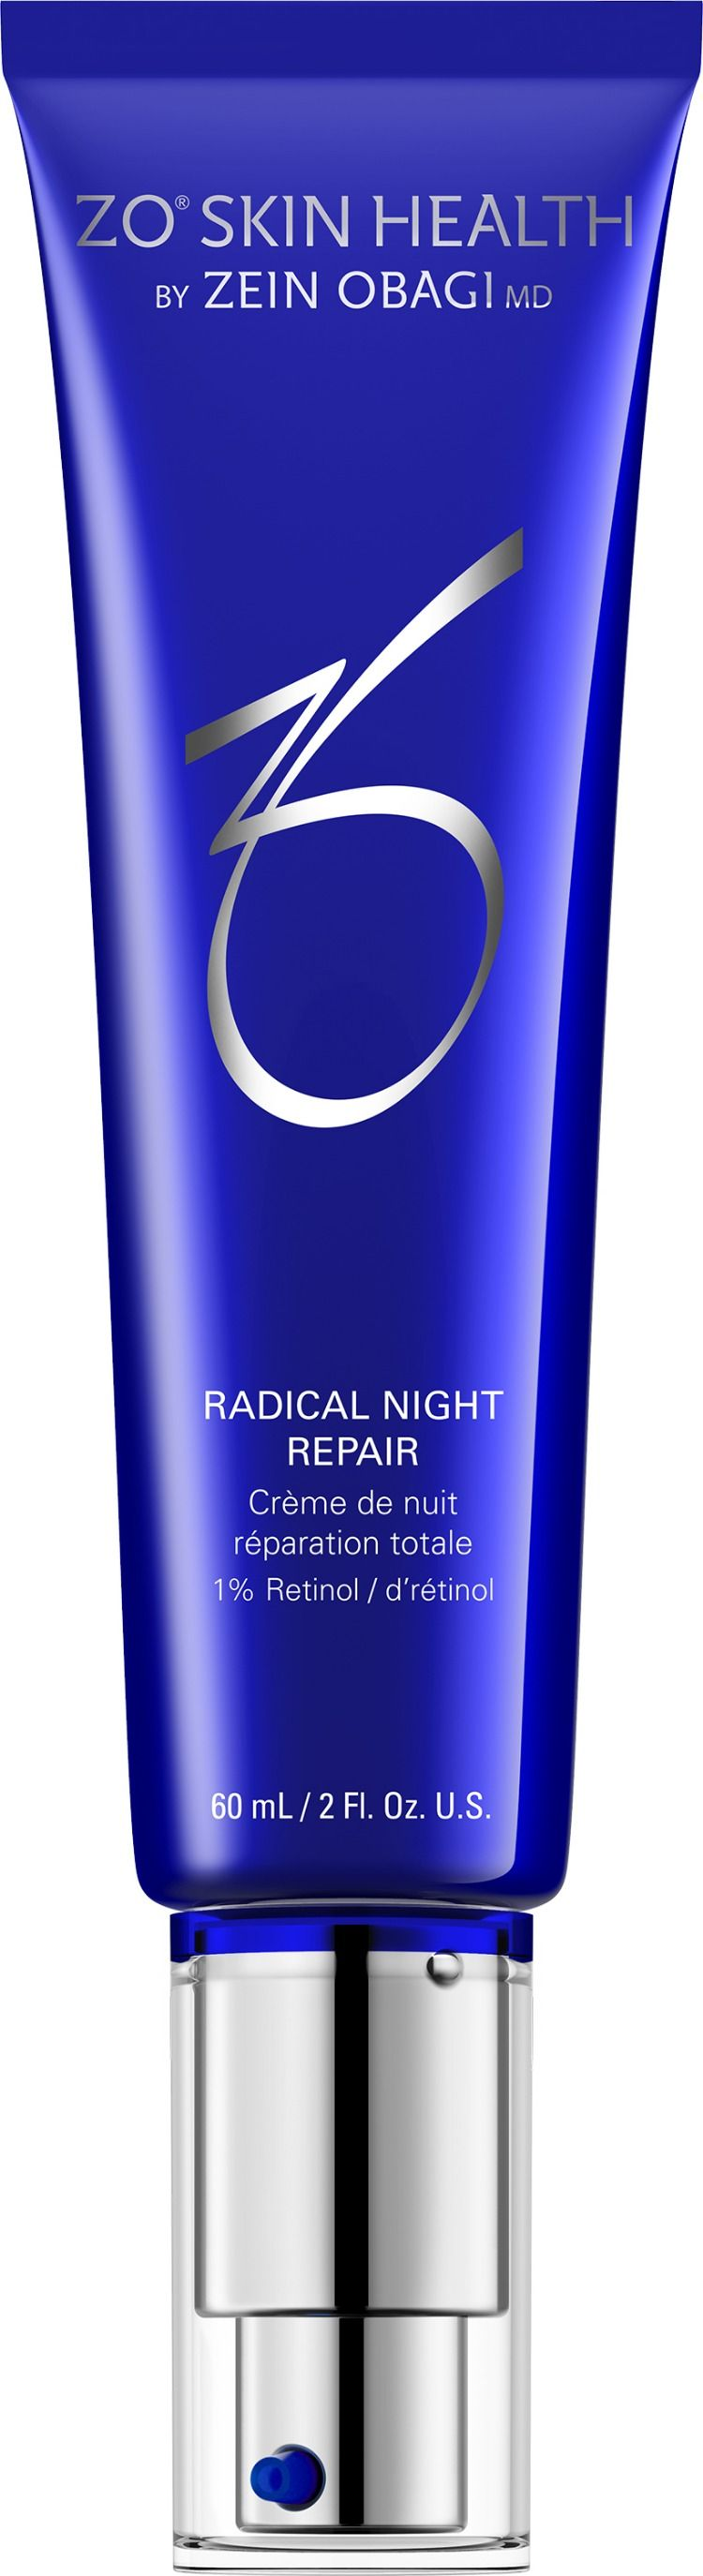 Radical Night Repair SOLMI Aesthetics Improve skin